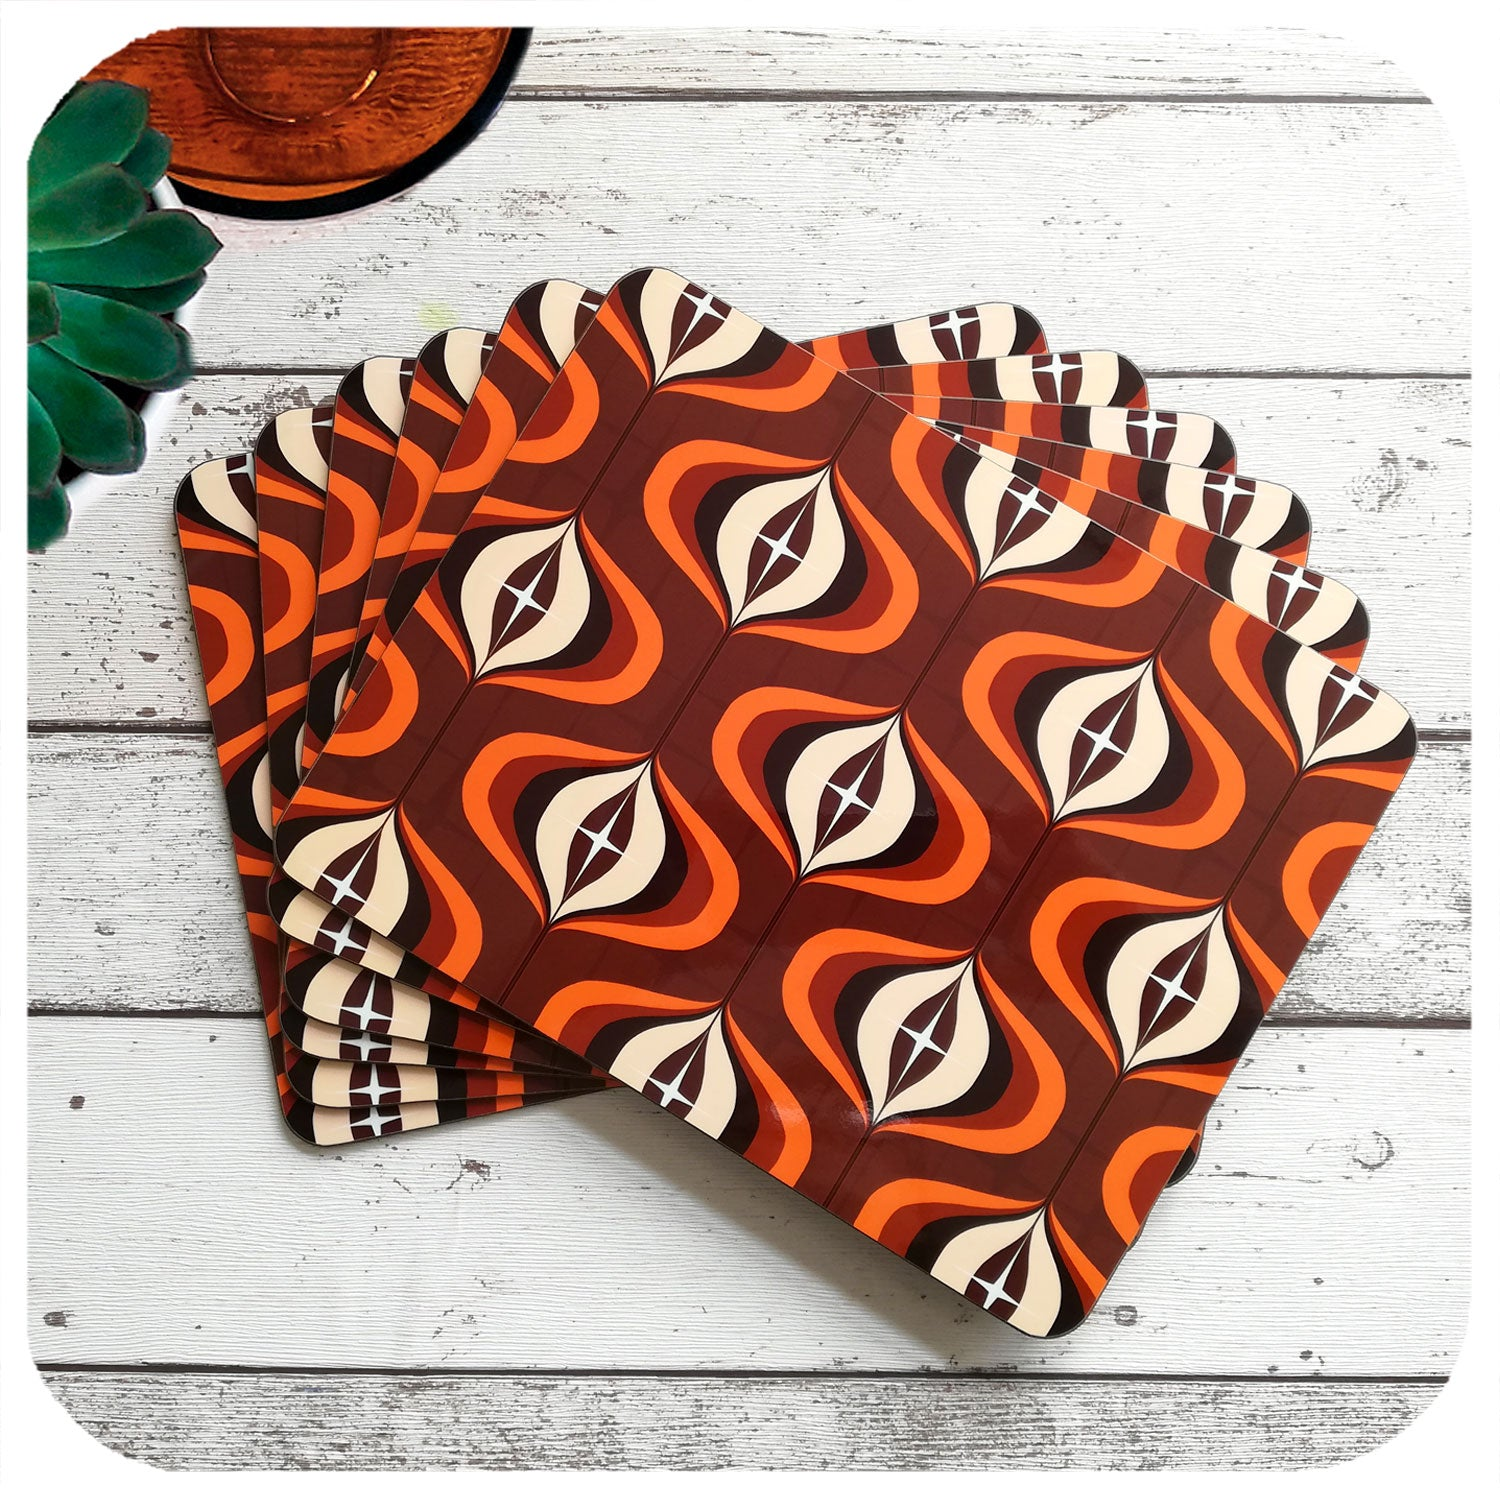 1970s Op Art Placemats in Brown and Orange, set of 6 laid out in a fan | The Inkabilly Emporium